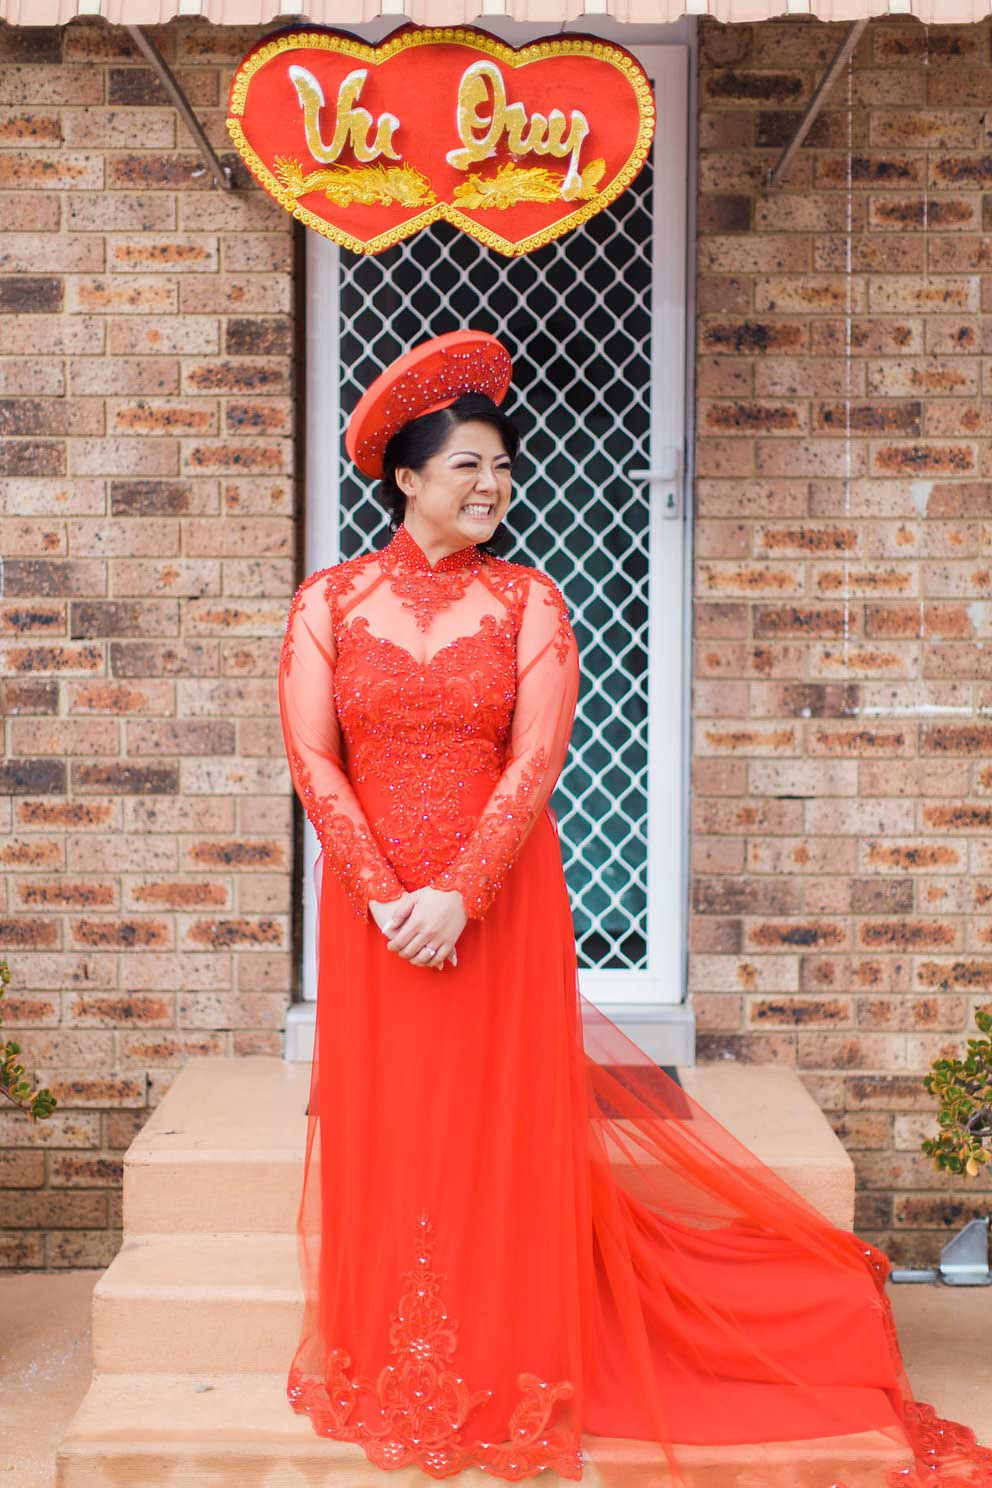 Linh's Wedding Ao Dai Photo 1